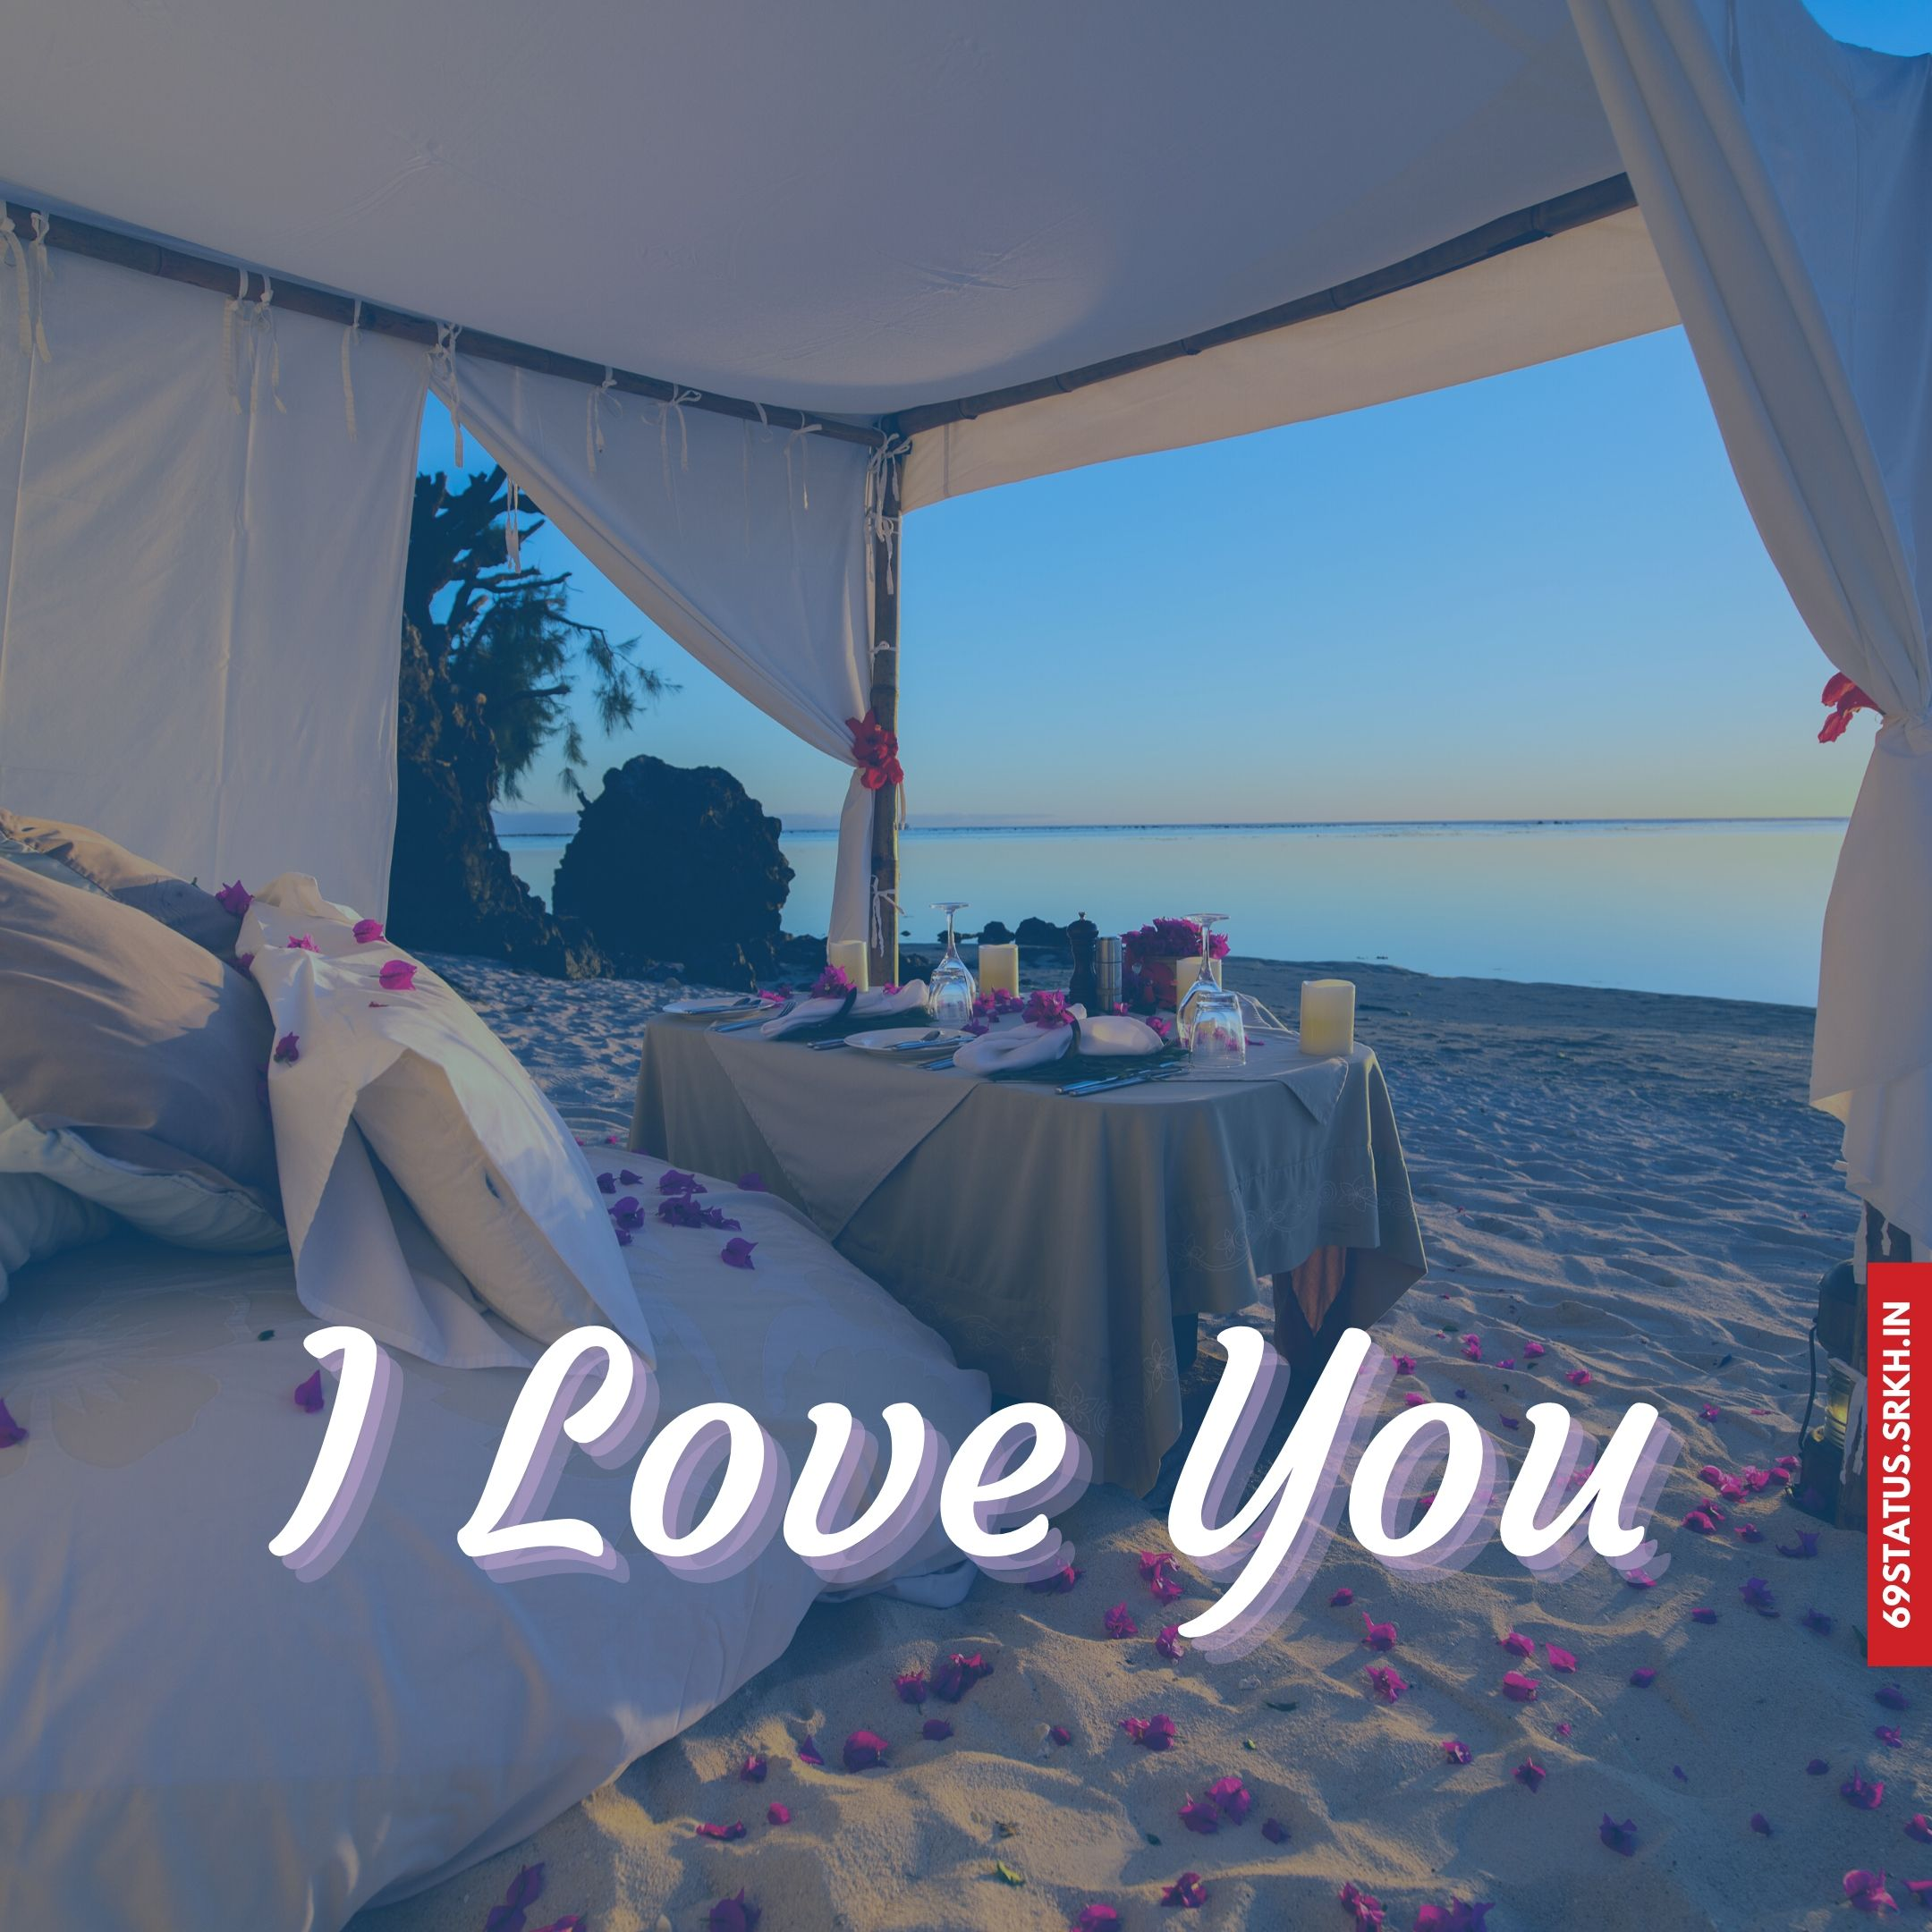 Romantic I Love You images full HD free download.